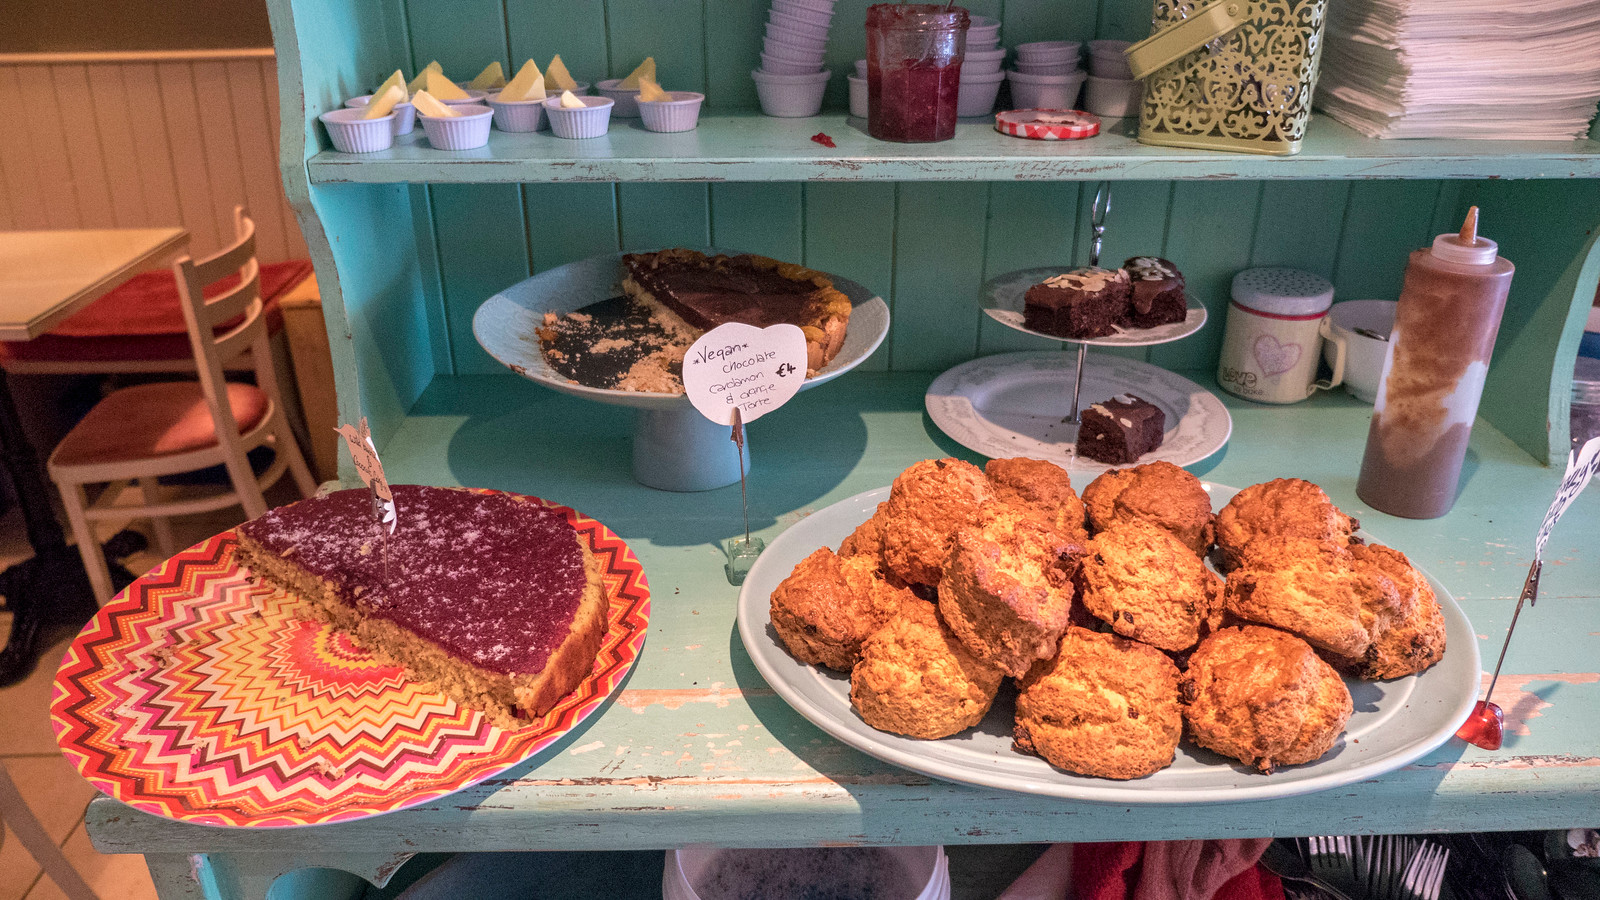 Desserts at Lighthouse Cafe, Galway - Vegan Galway Restaurant and Dining Guide